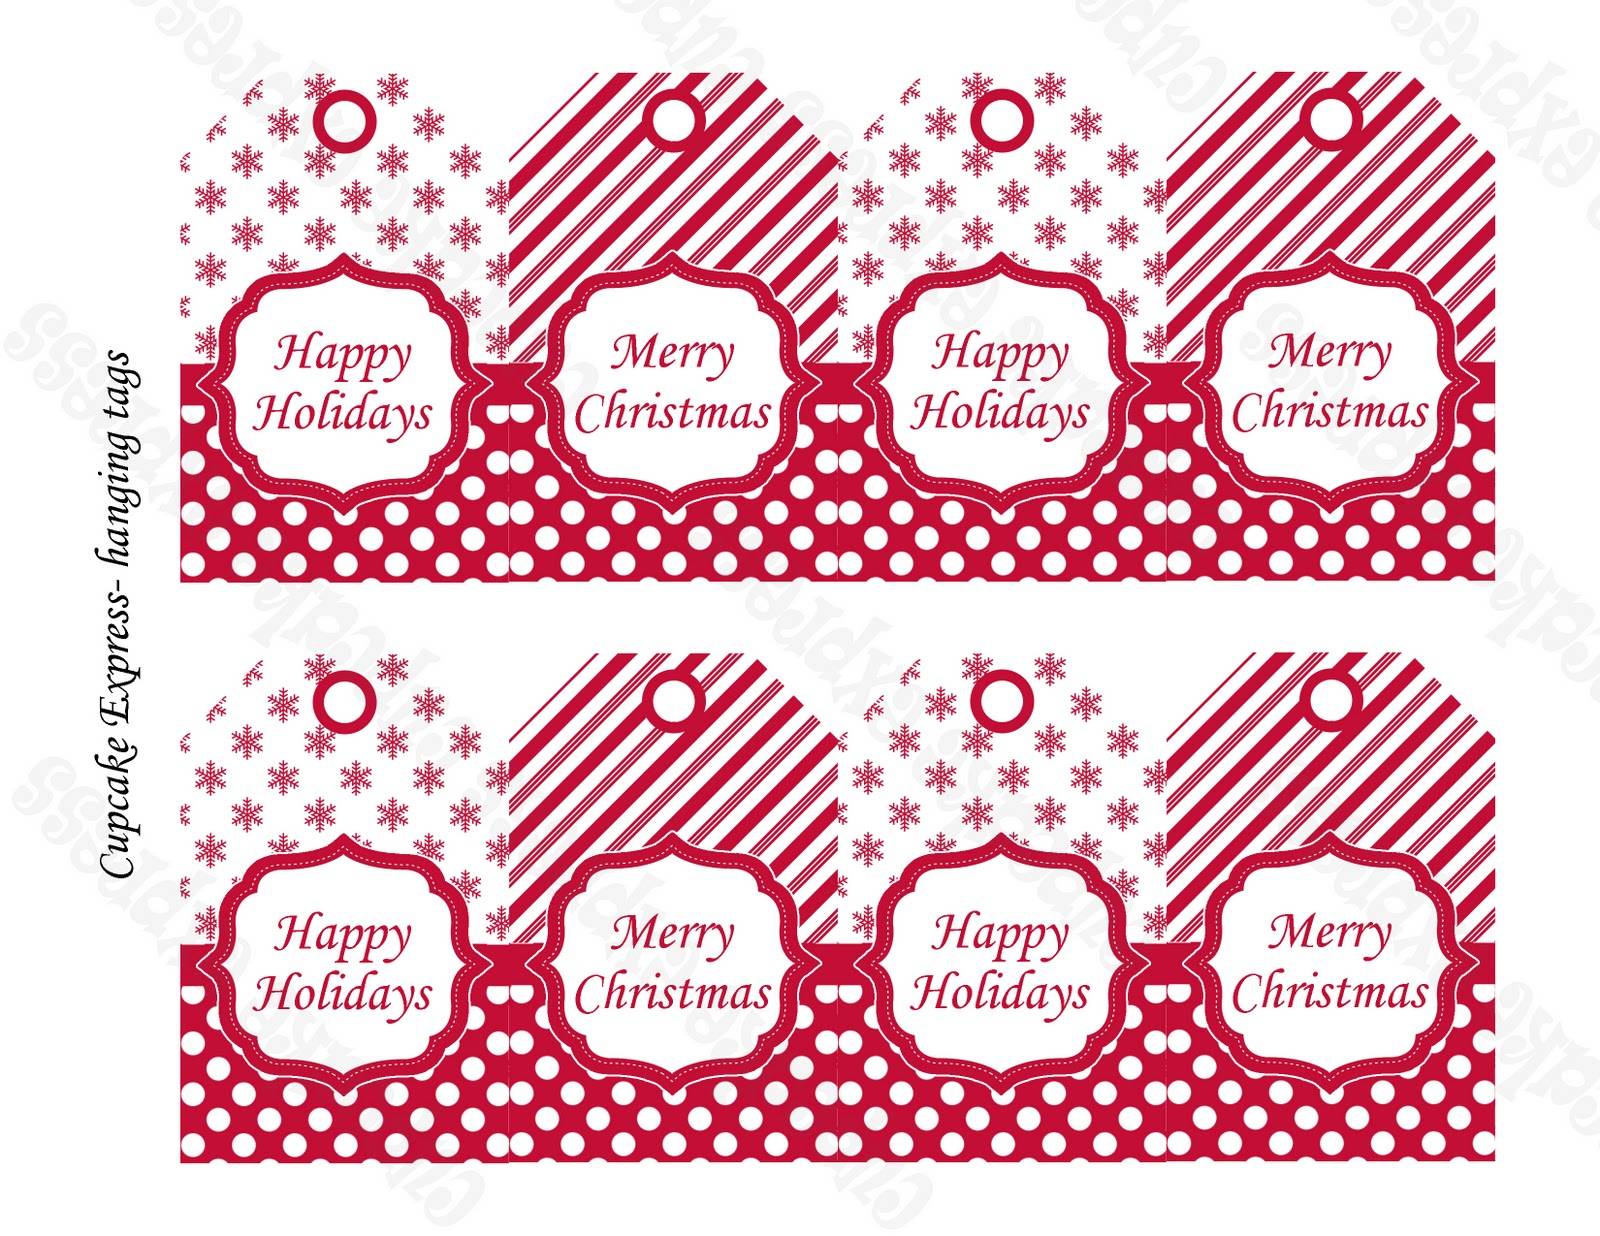 Displaying 18> Images For - Free Printable Christmas Tags...